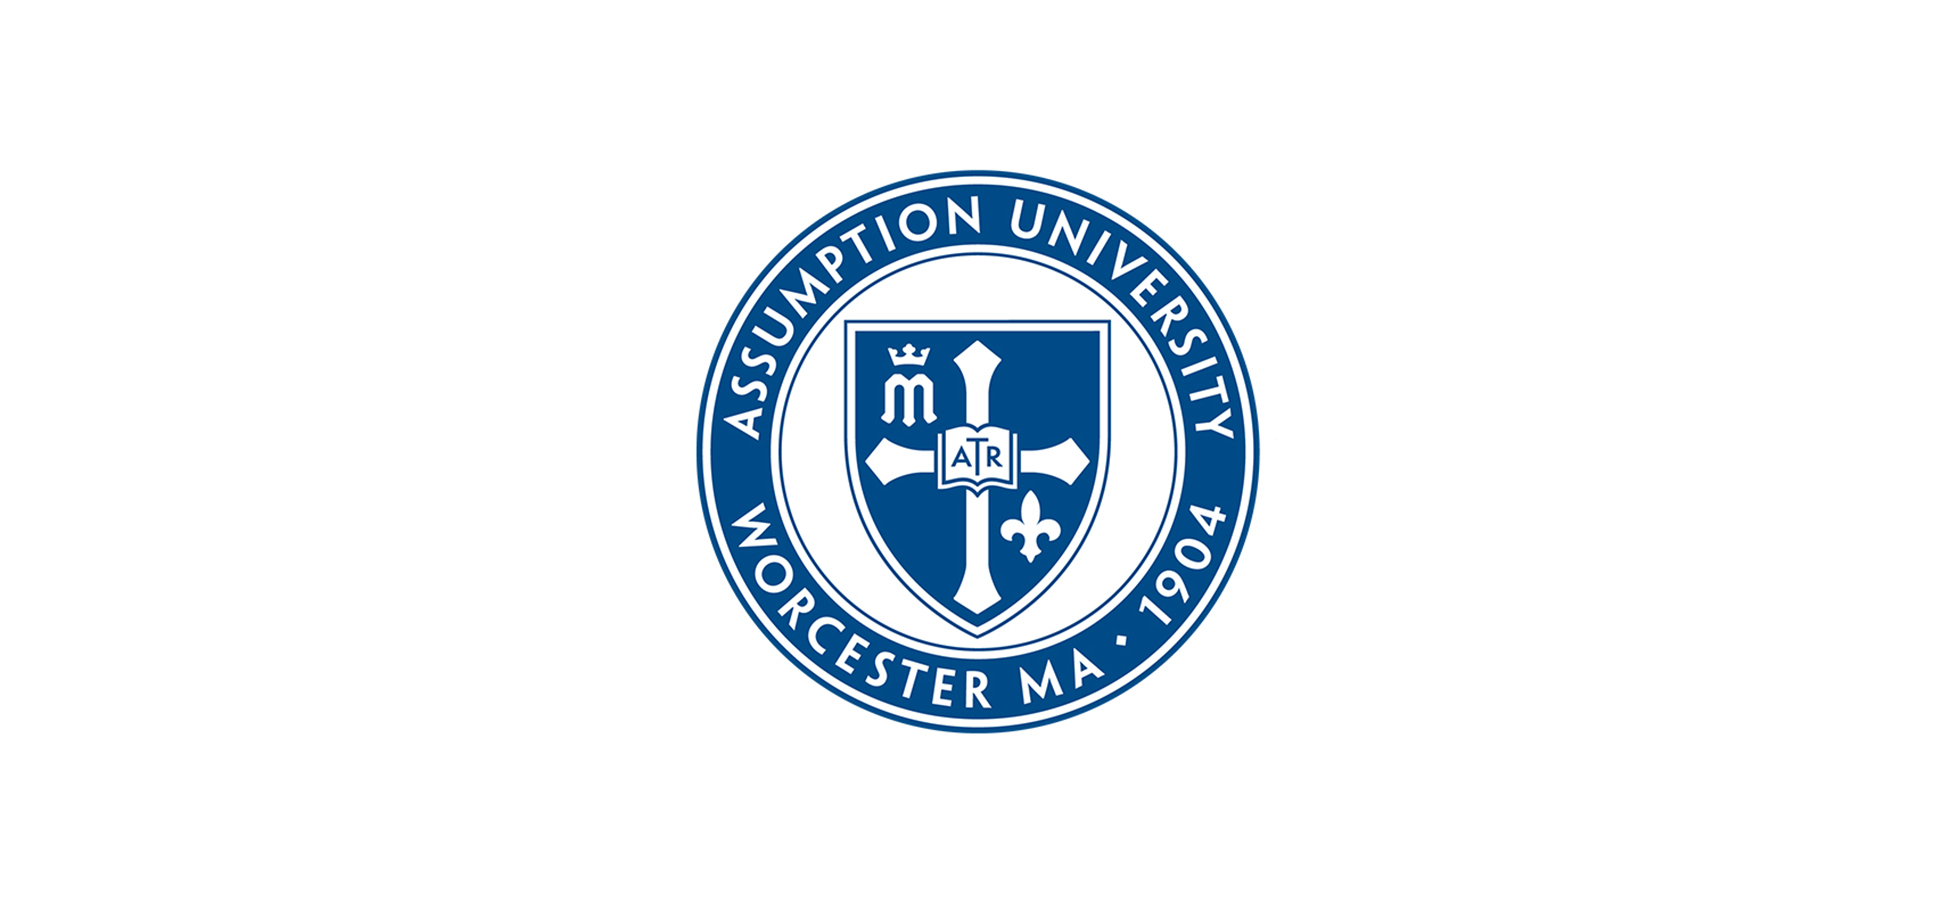 The blue and white seal of Assumption University